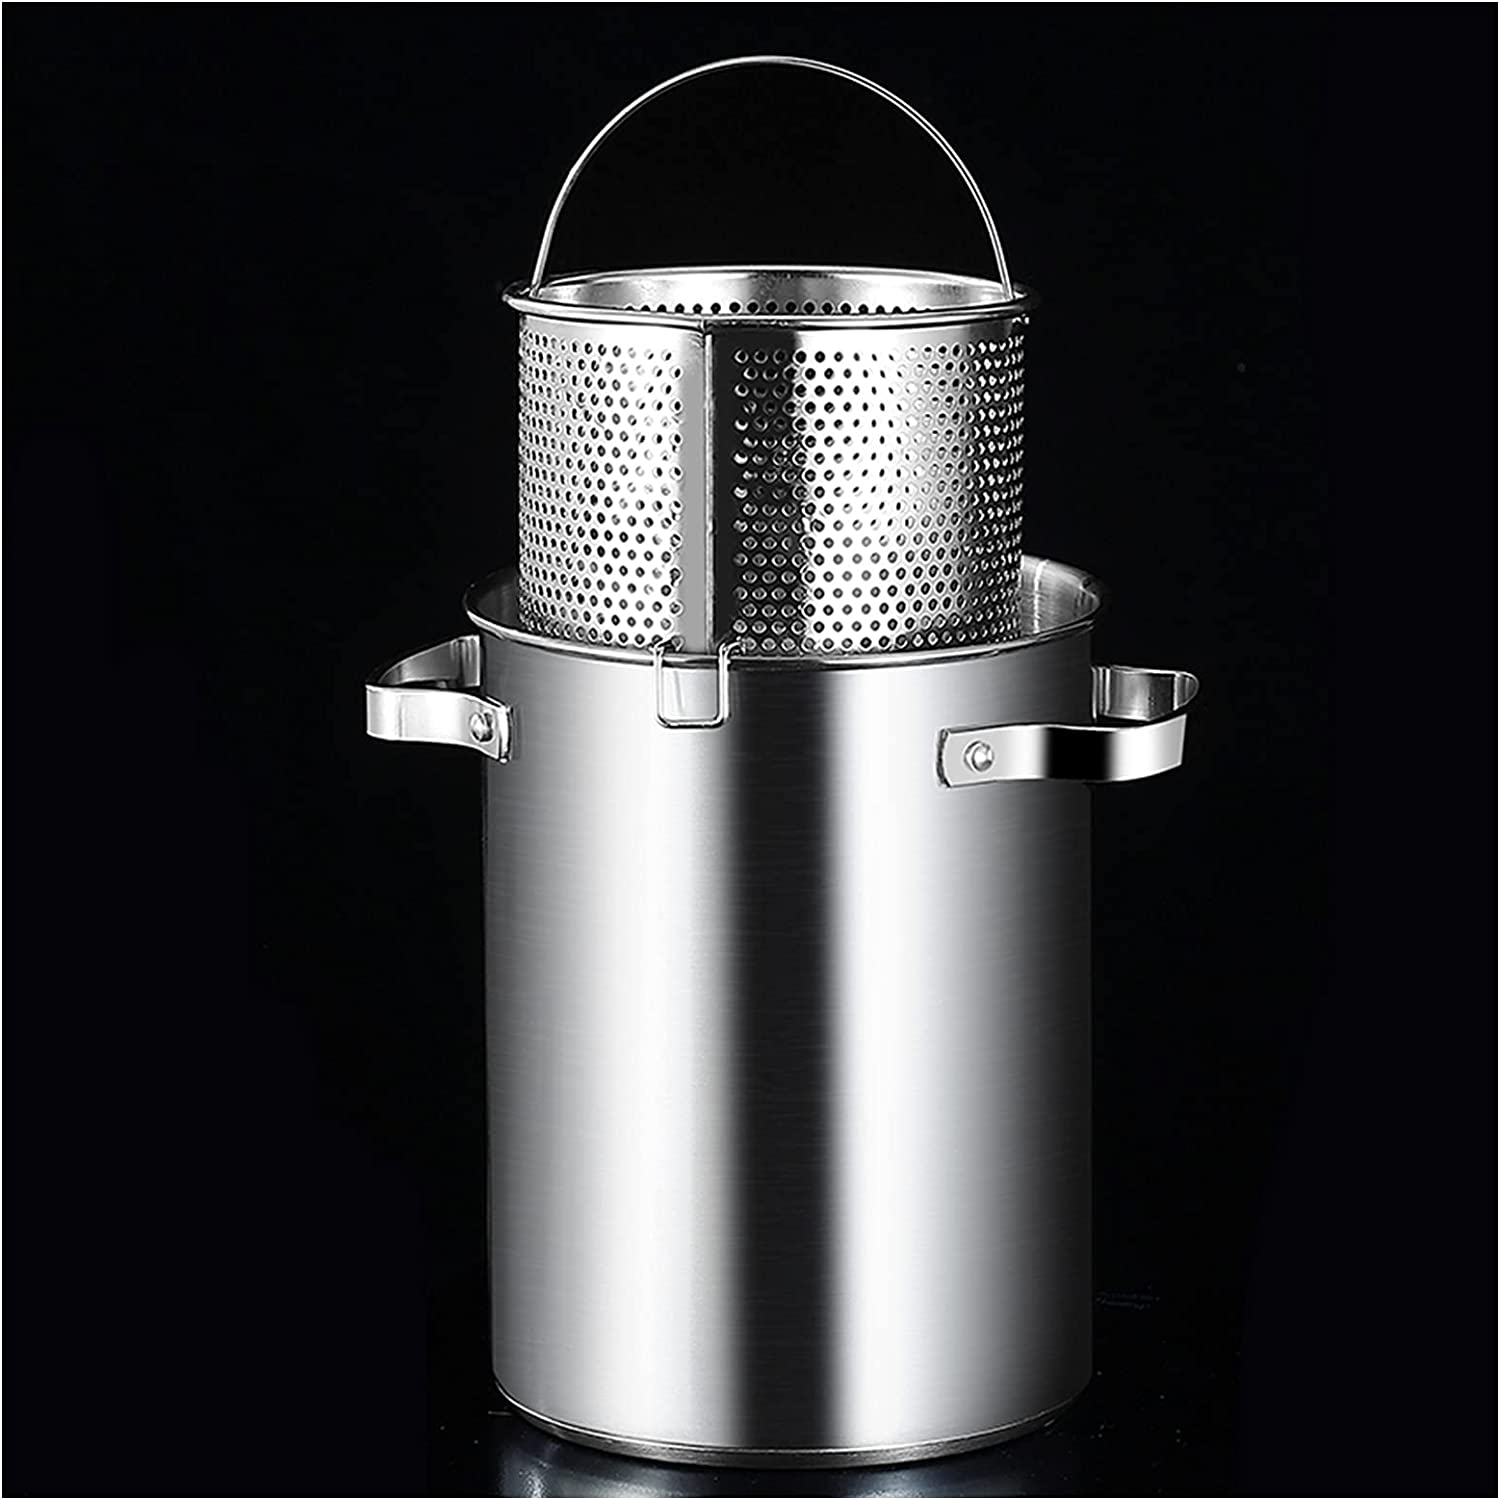 304 Stainless Steel Stock Pot - Turkey Fryer Pot with Boil Basket All Purpose Cooking Pot for Crawfish Lobster Seafood Cooking